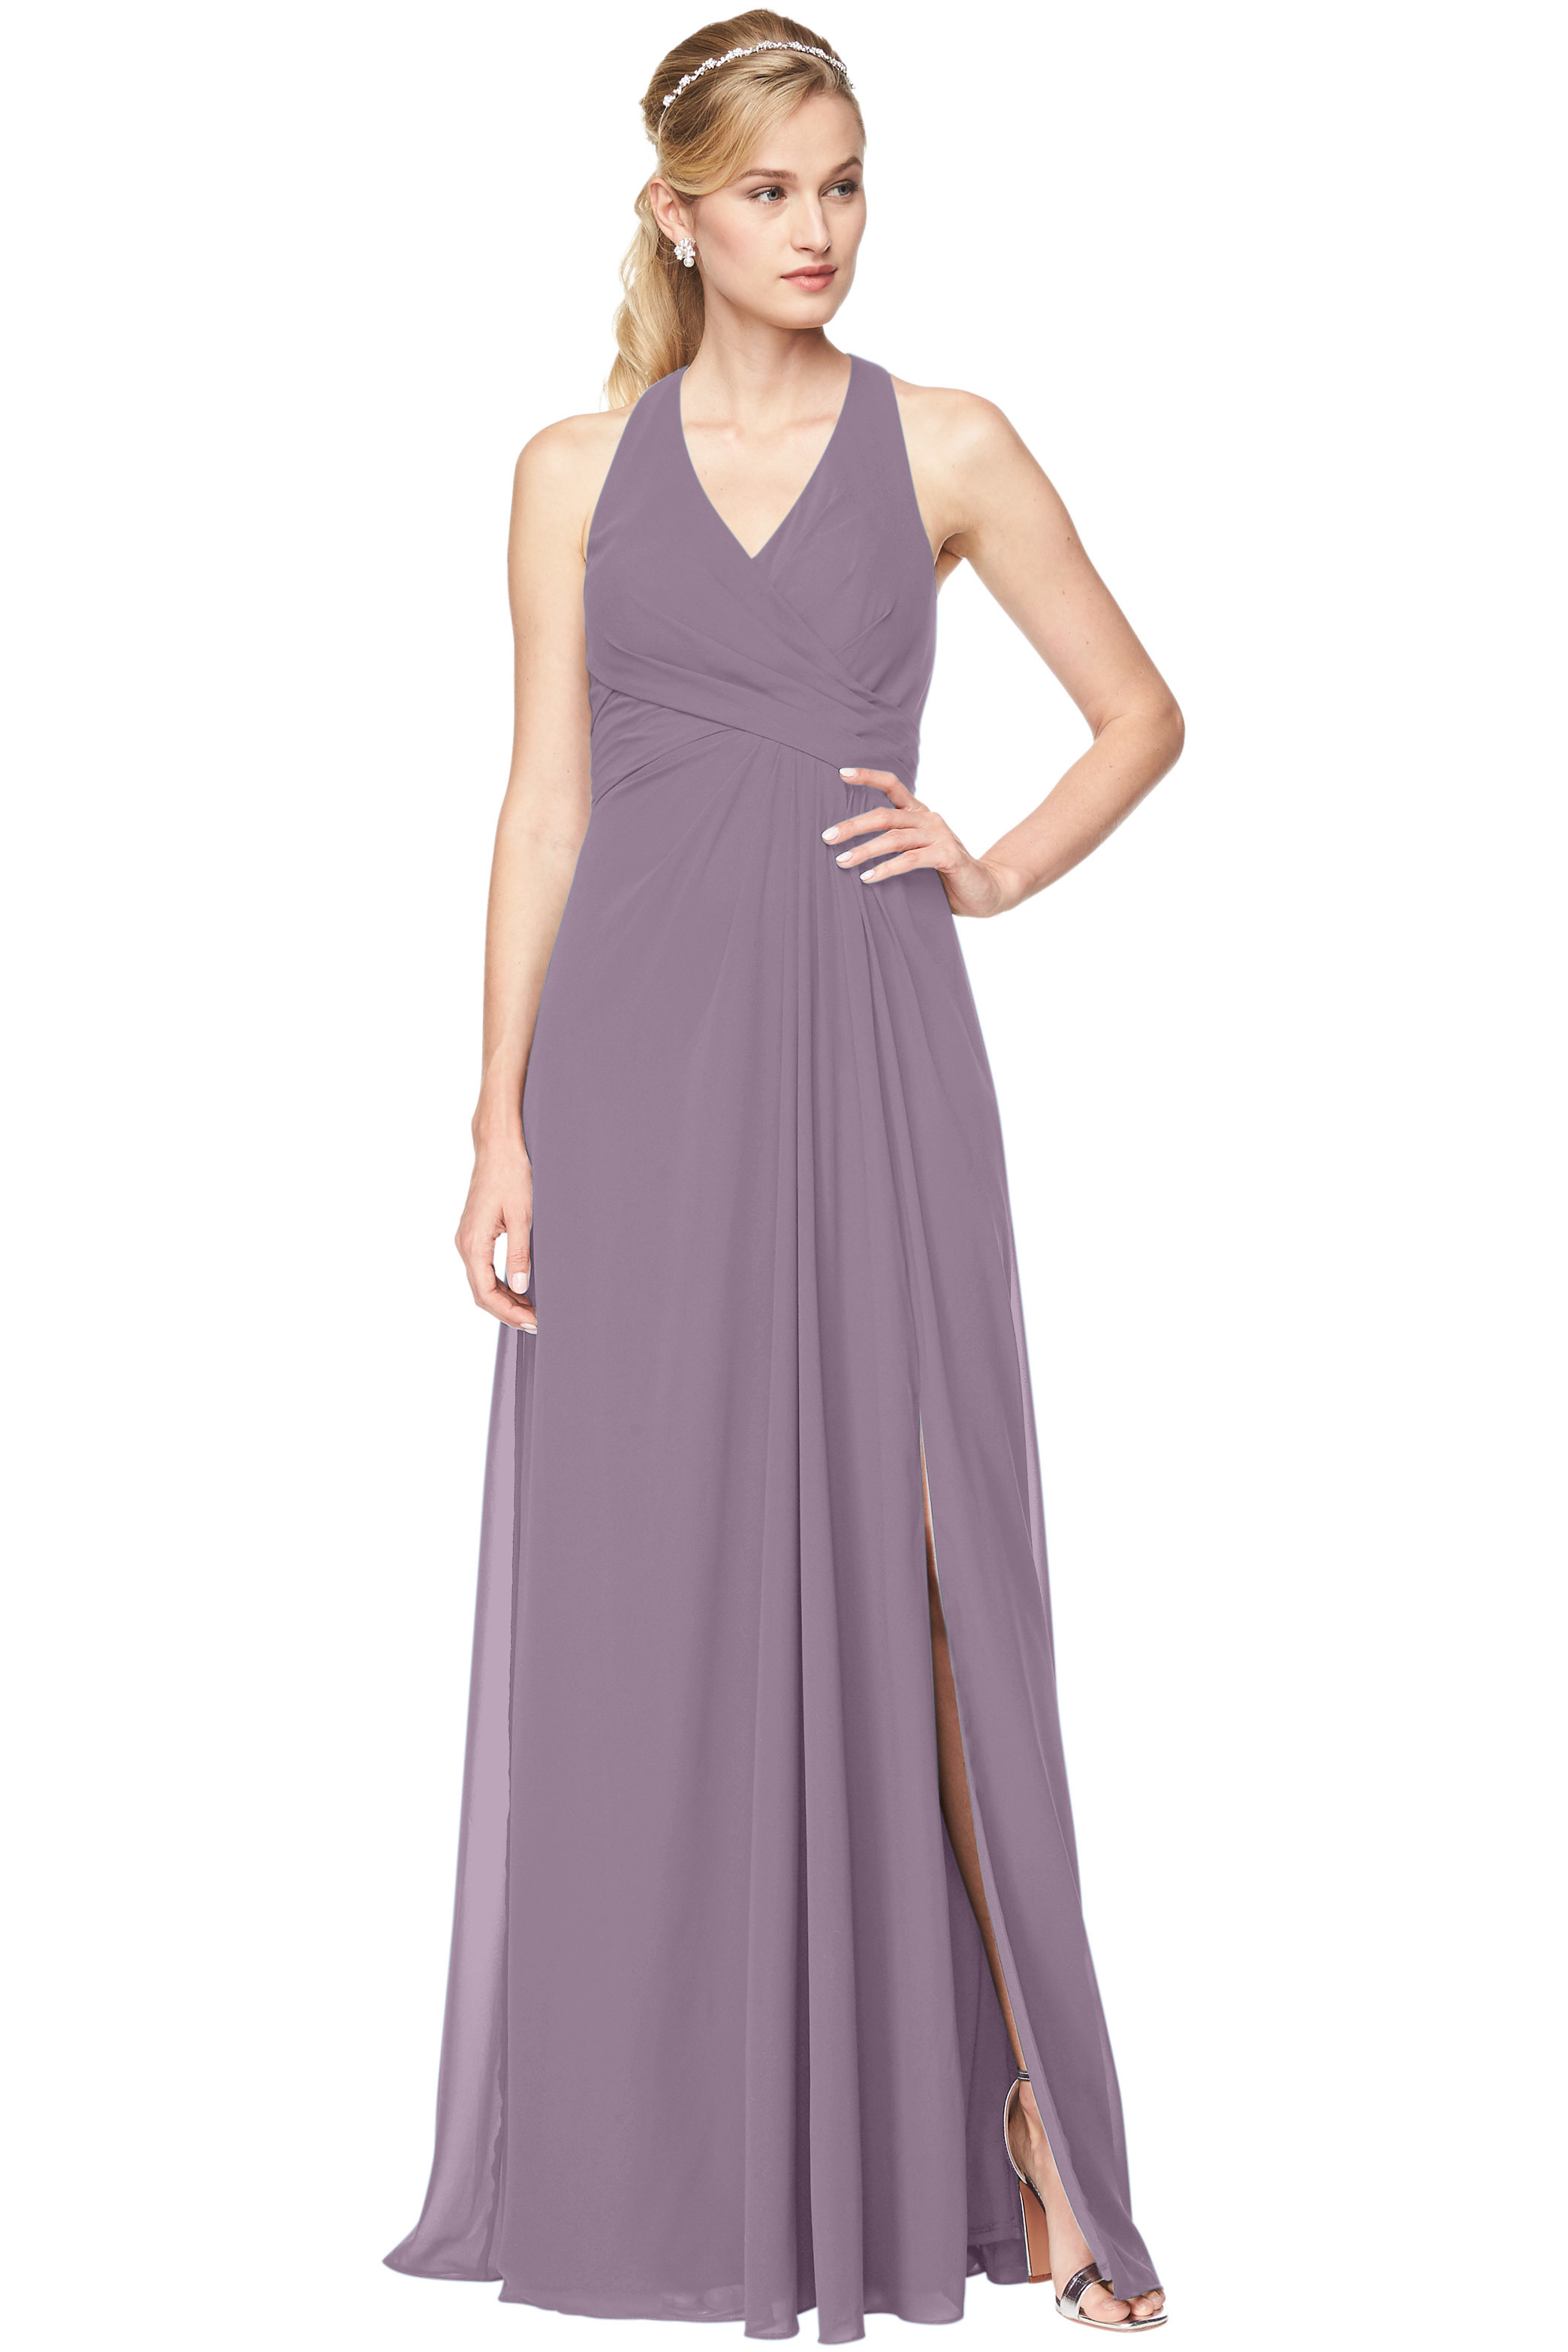 Bill Levkoff VICTORIAN LILAC Chiffon V-Neck, Halter A-Line gown, $198.00 Front